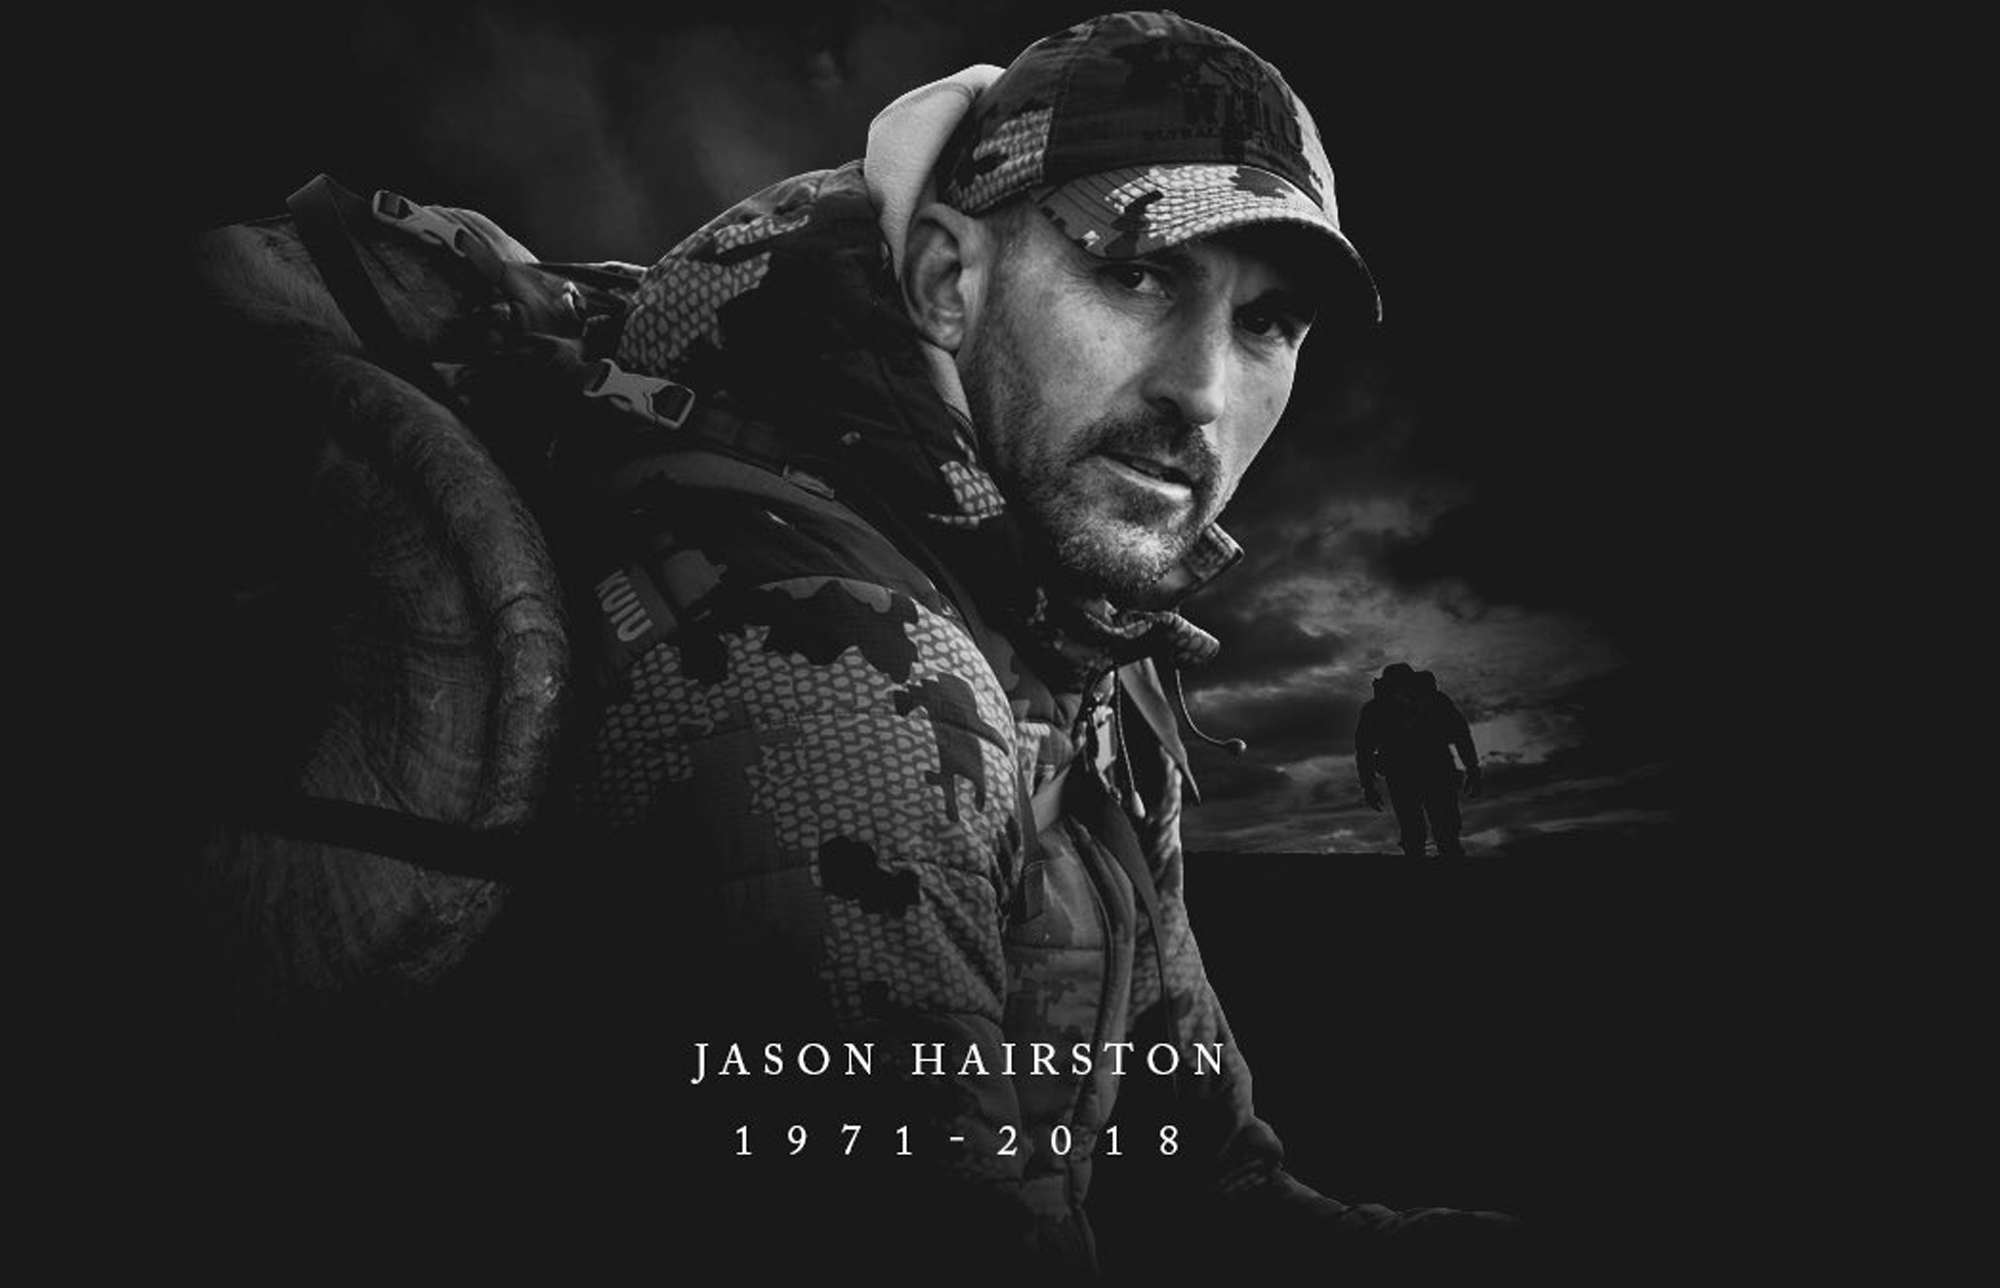 49ers camping chair comfy office chairs kuiu sitka founder jason hairston has died gearjunkie